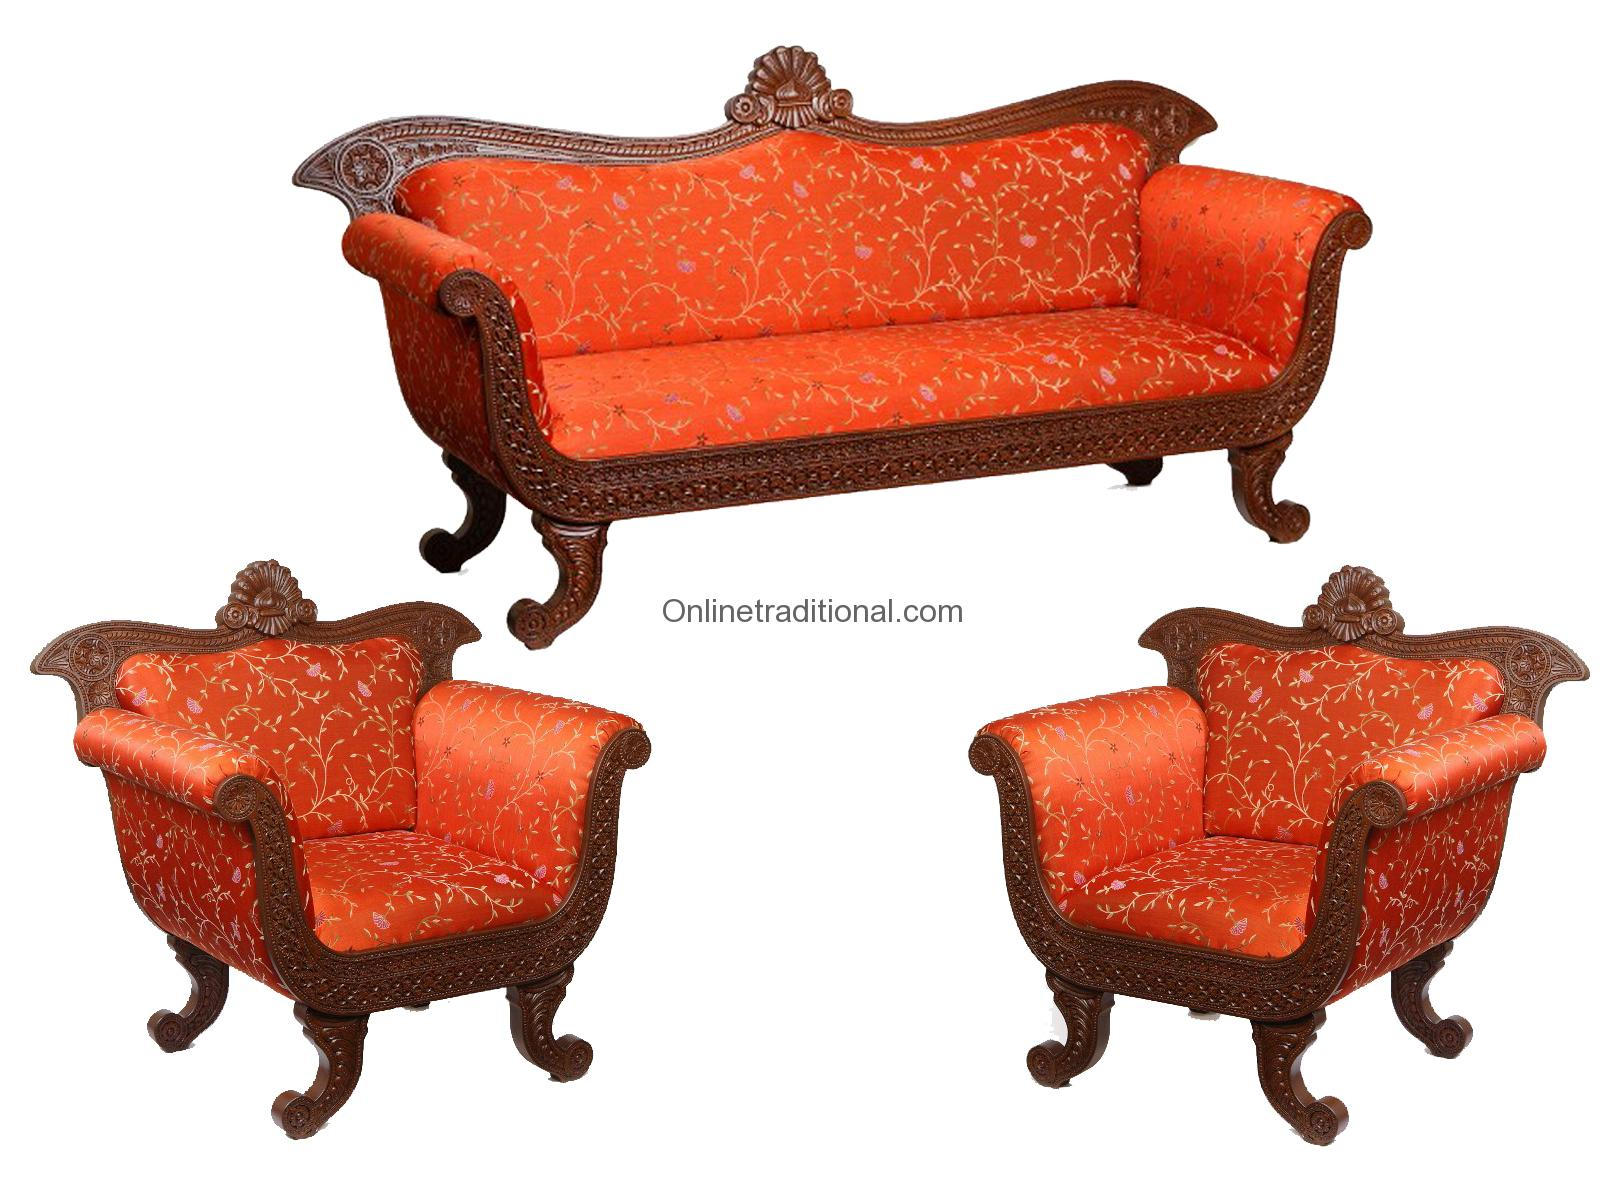 furniture sofa set online dylan leather corner with chaise order unique teak wood at pearlhandicrafts